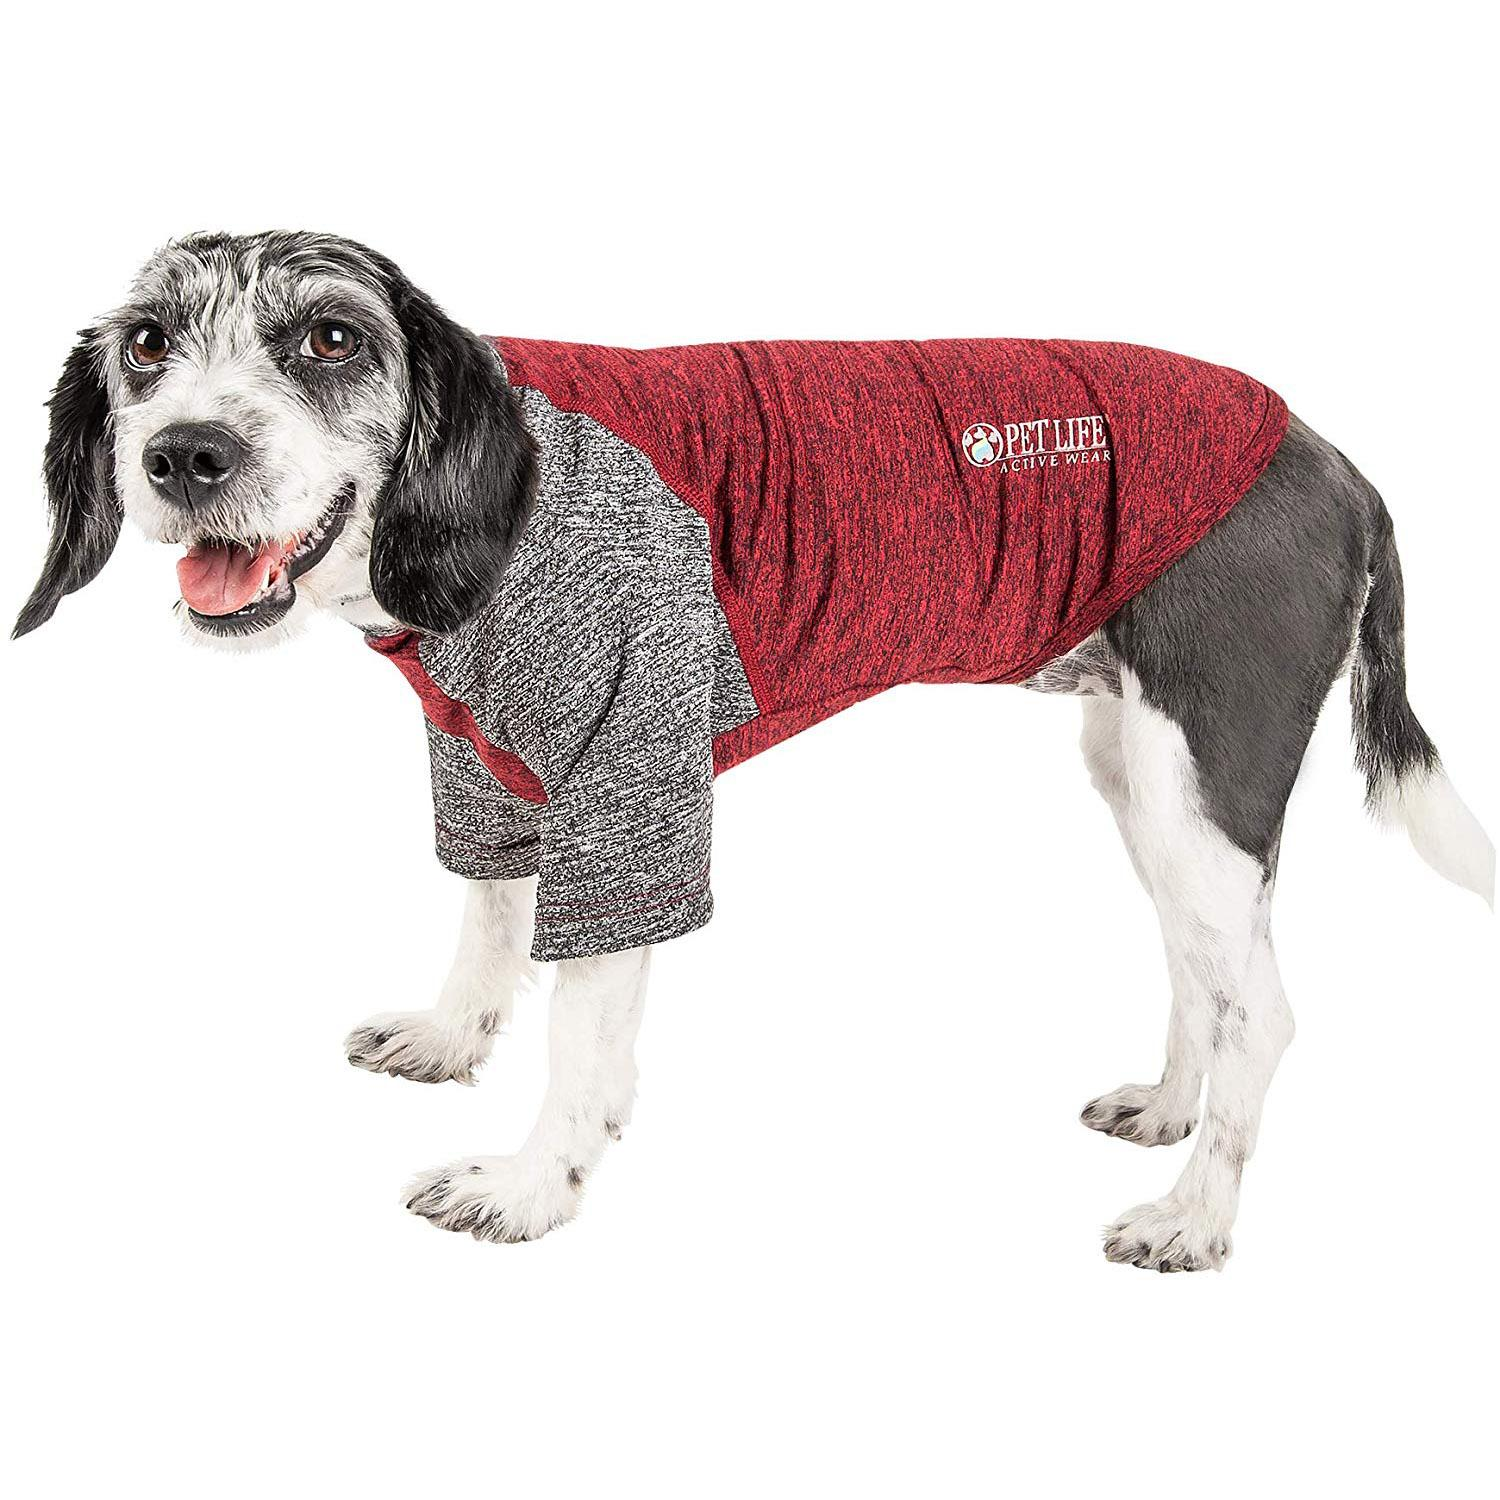 Pet Life ACTIVE 'Hybreed' Two-Toned Performance Dog T-Shirt - Maroon and Gray